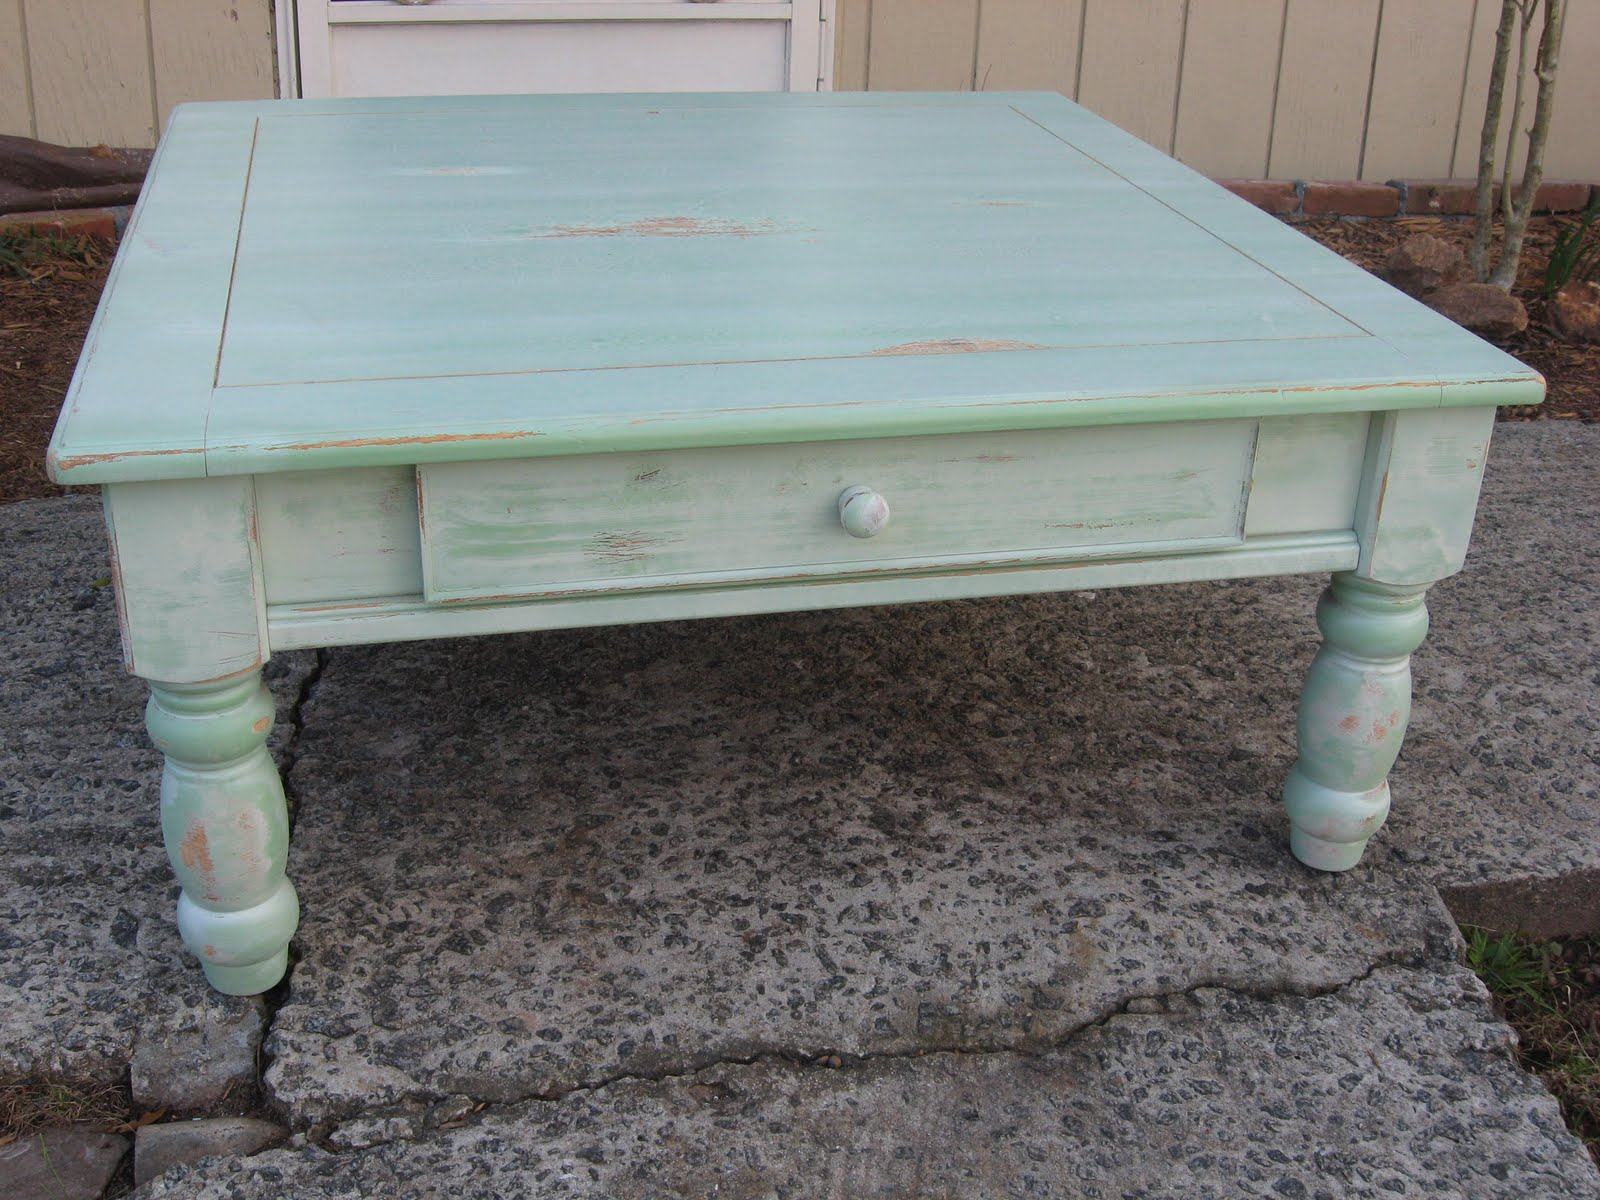 A New Leaf Furniture: Green/whitewash Coffee Table - Sold!